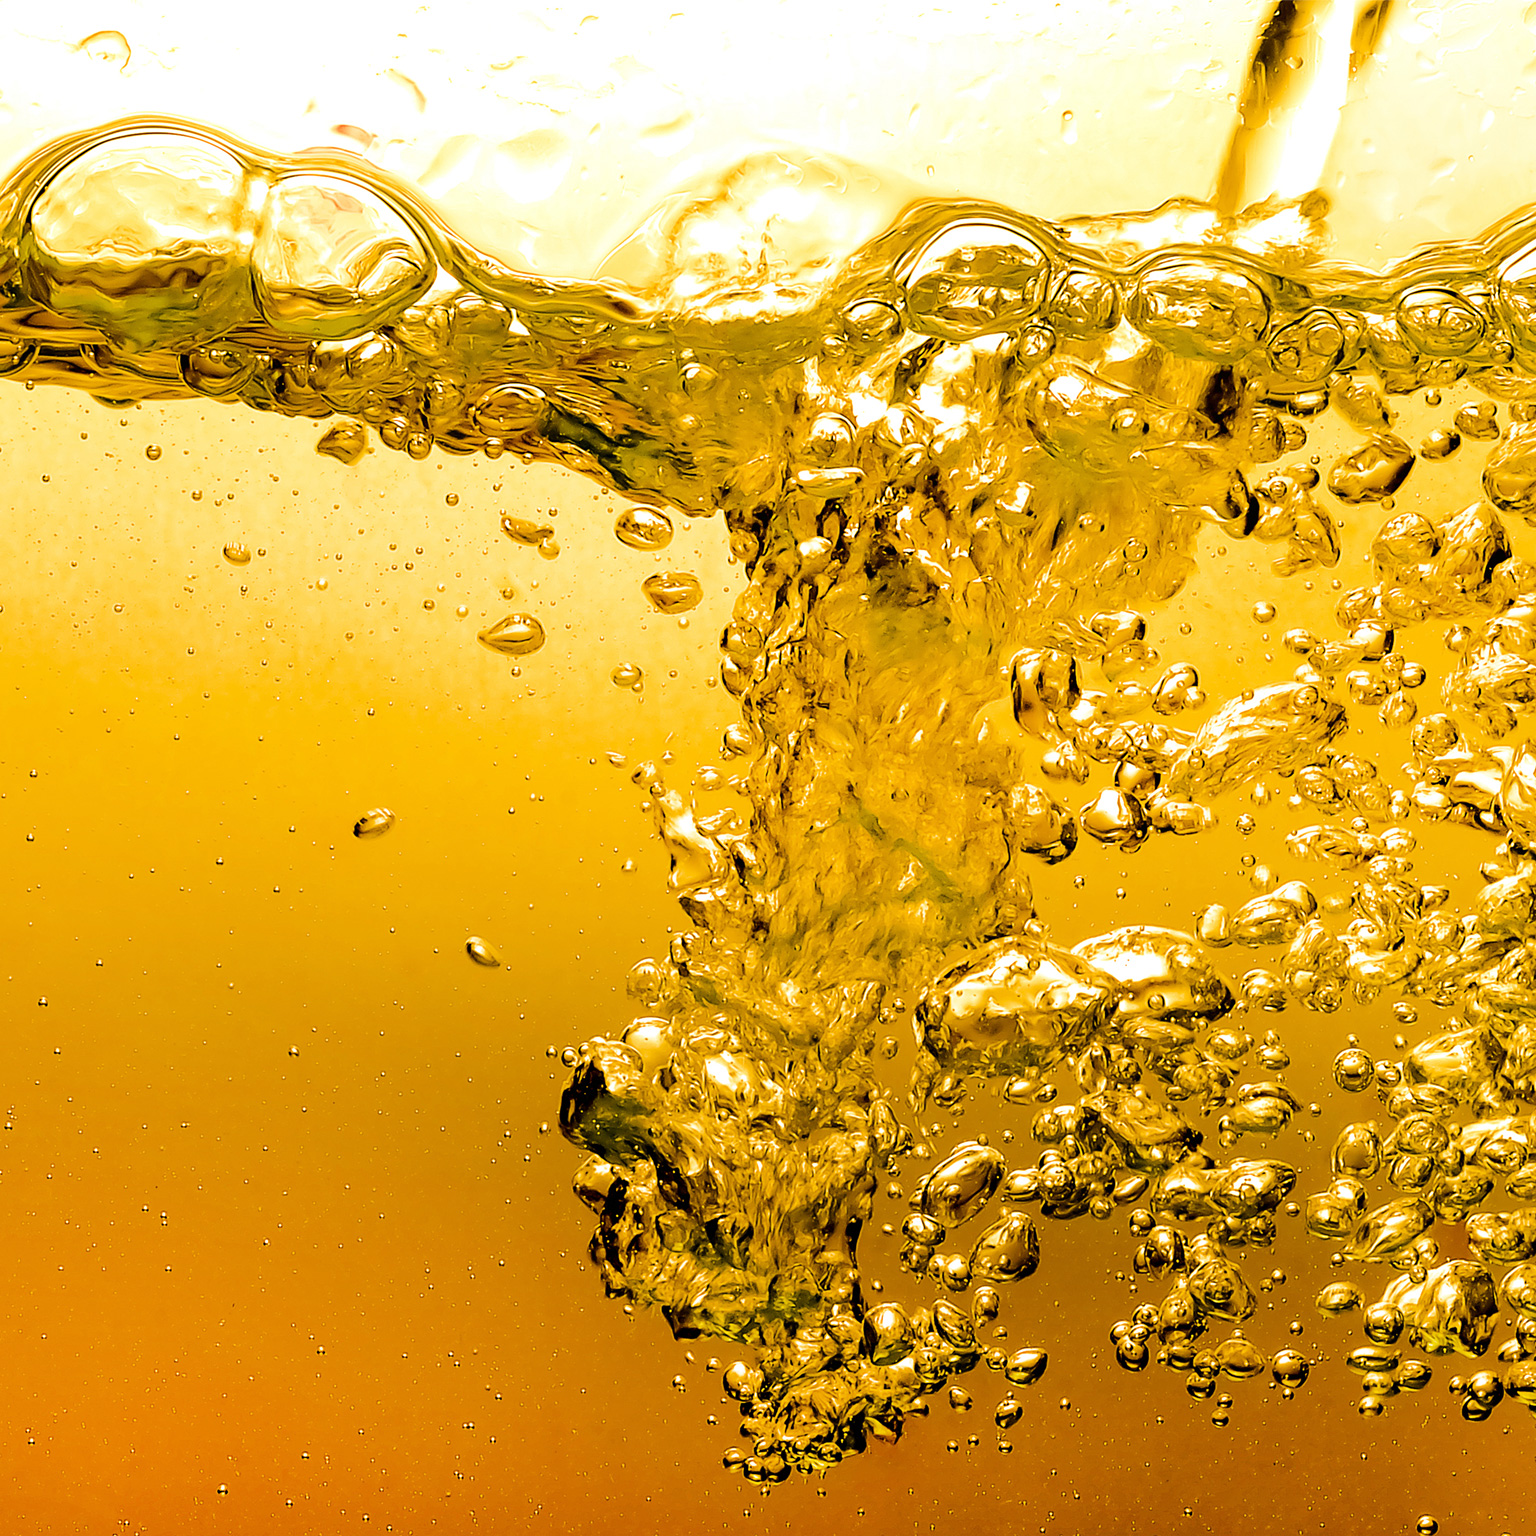 Bubbles in water and oil - gold